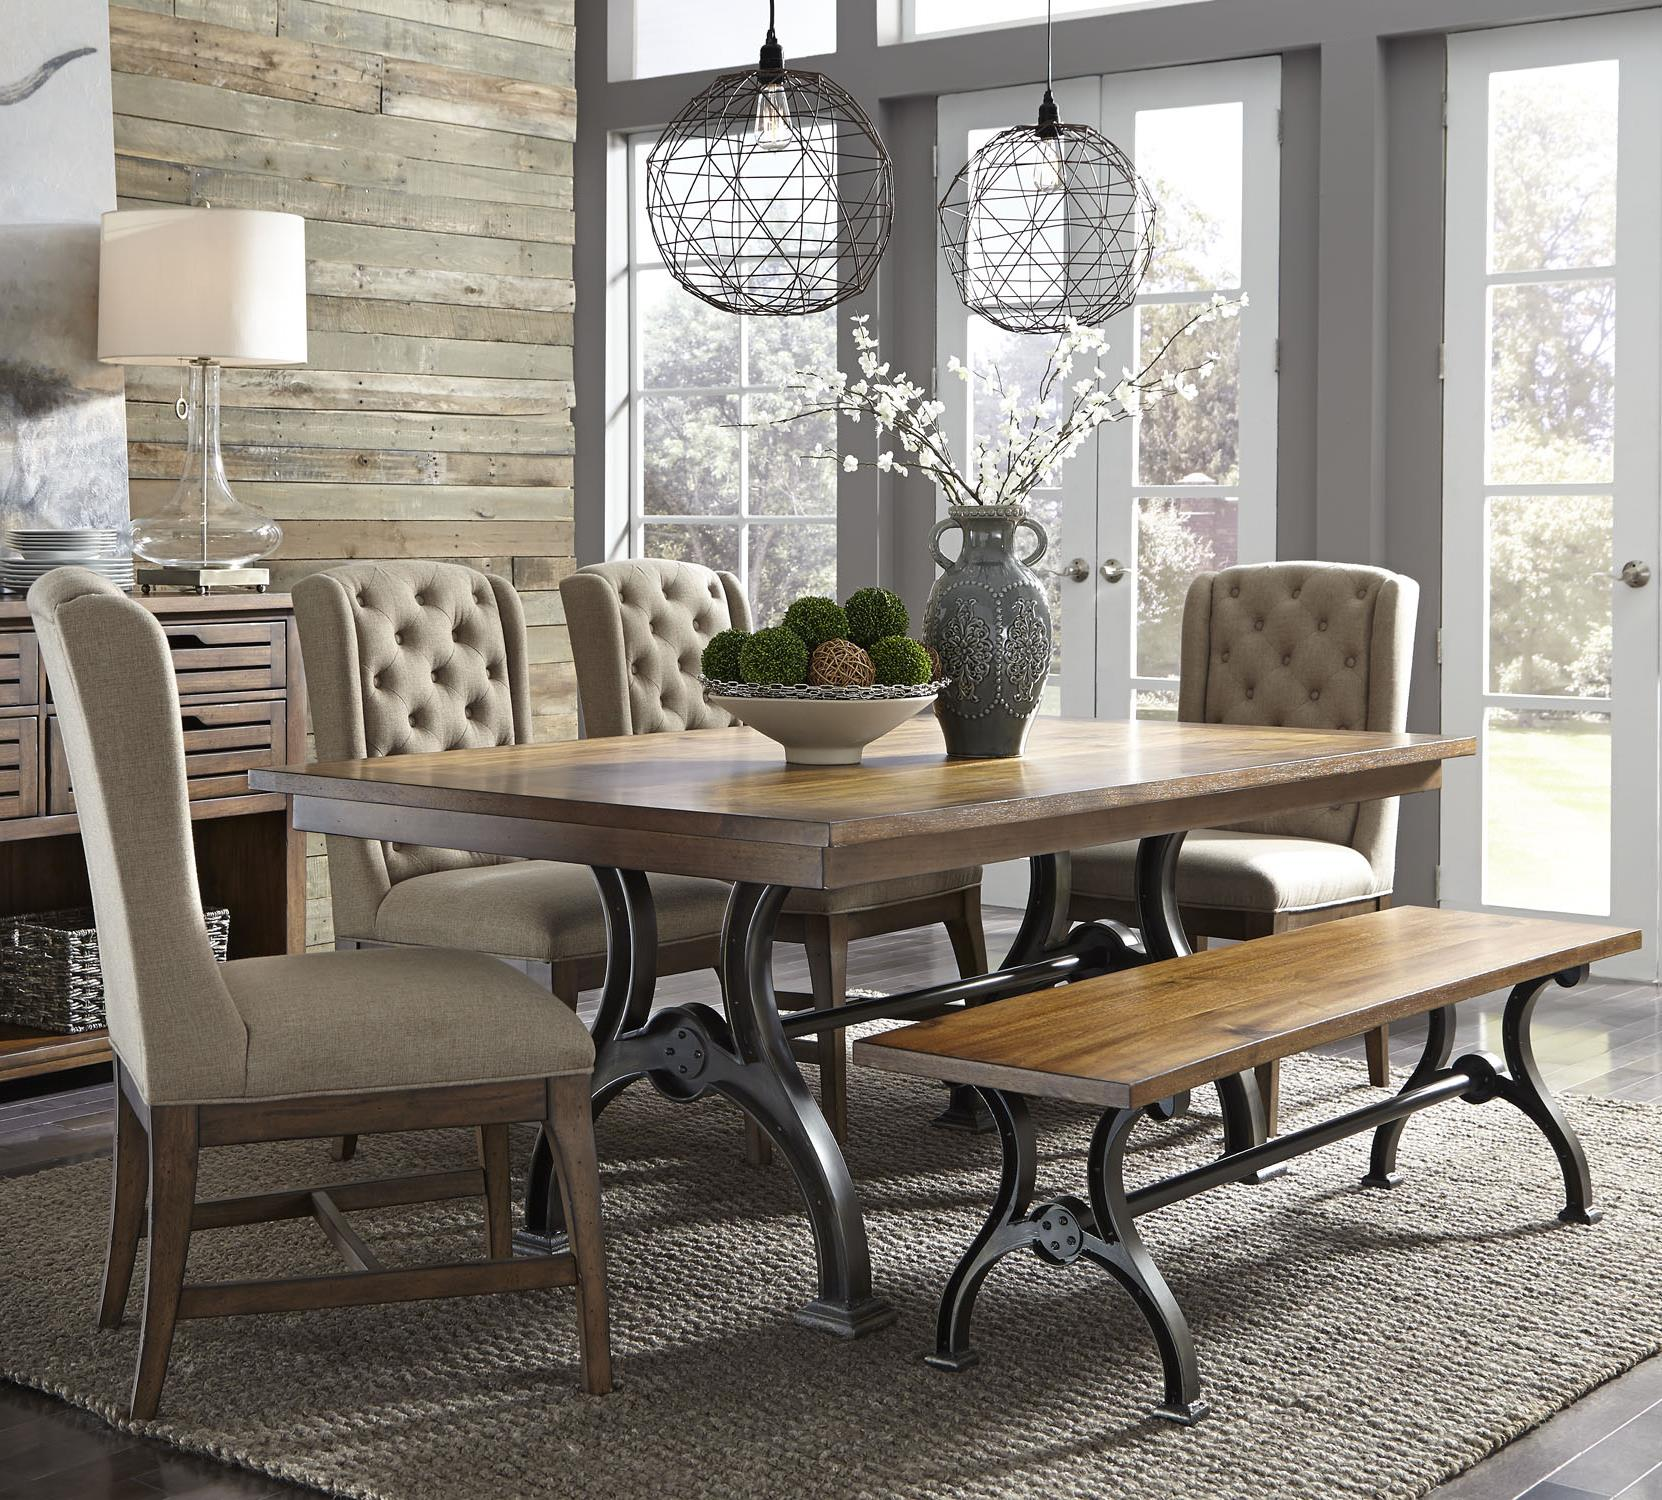 6 Piece Trestle Table Set with Bench